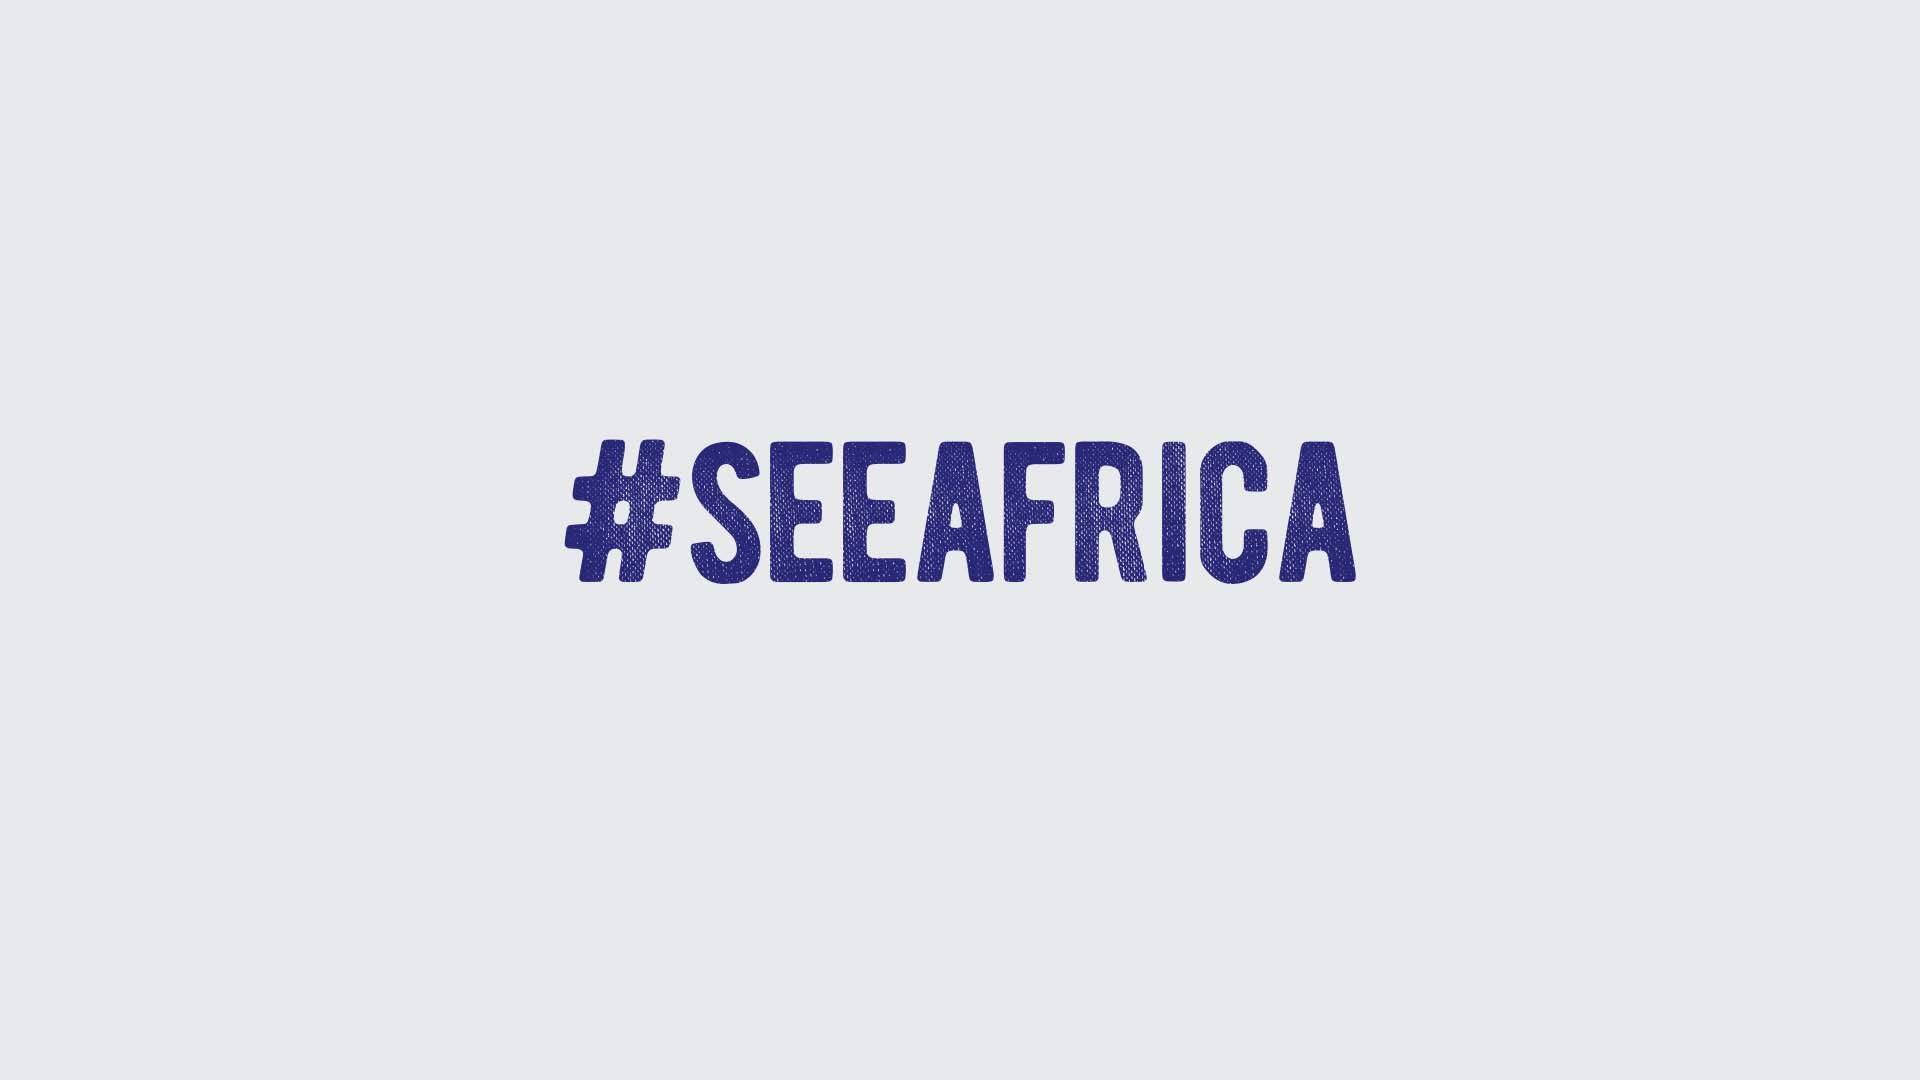 see-africa